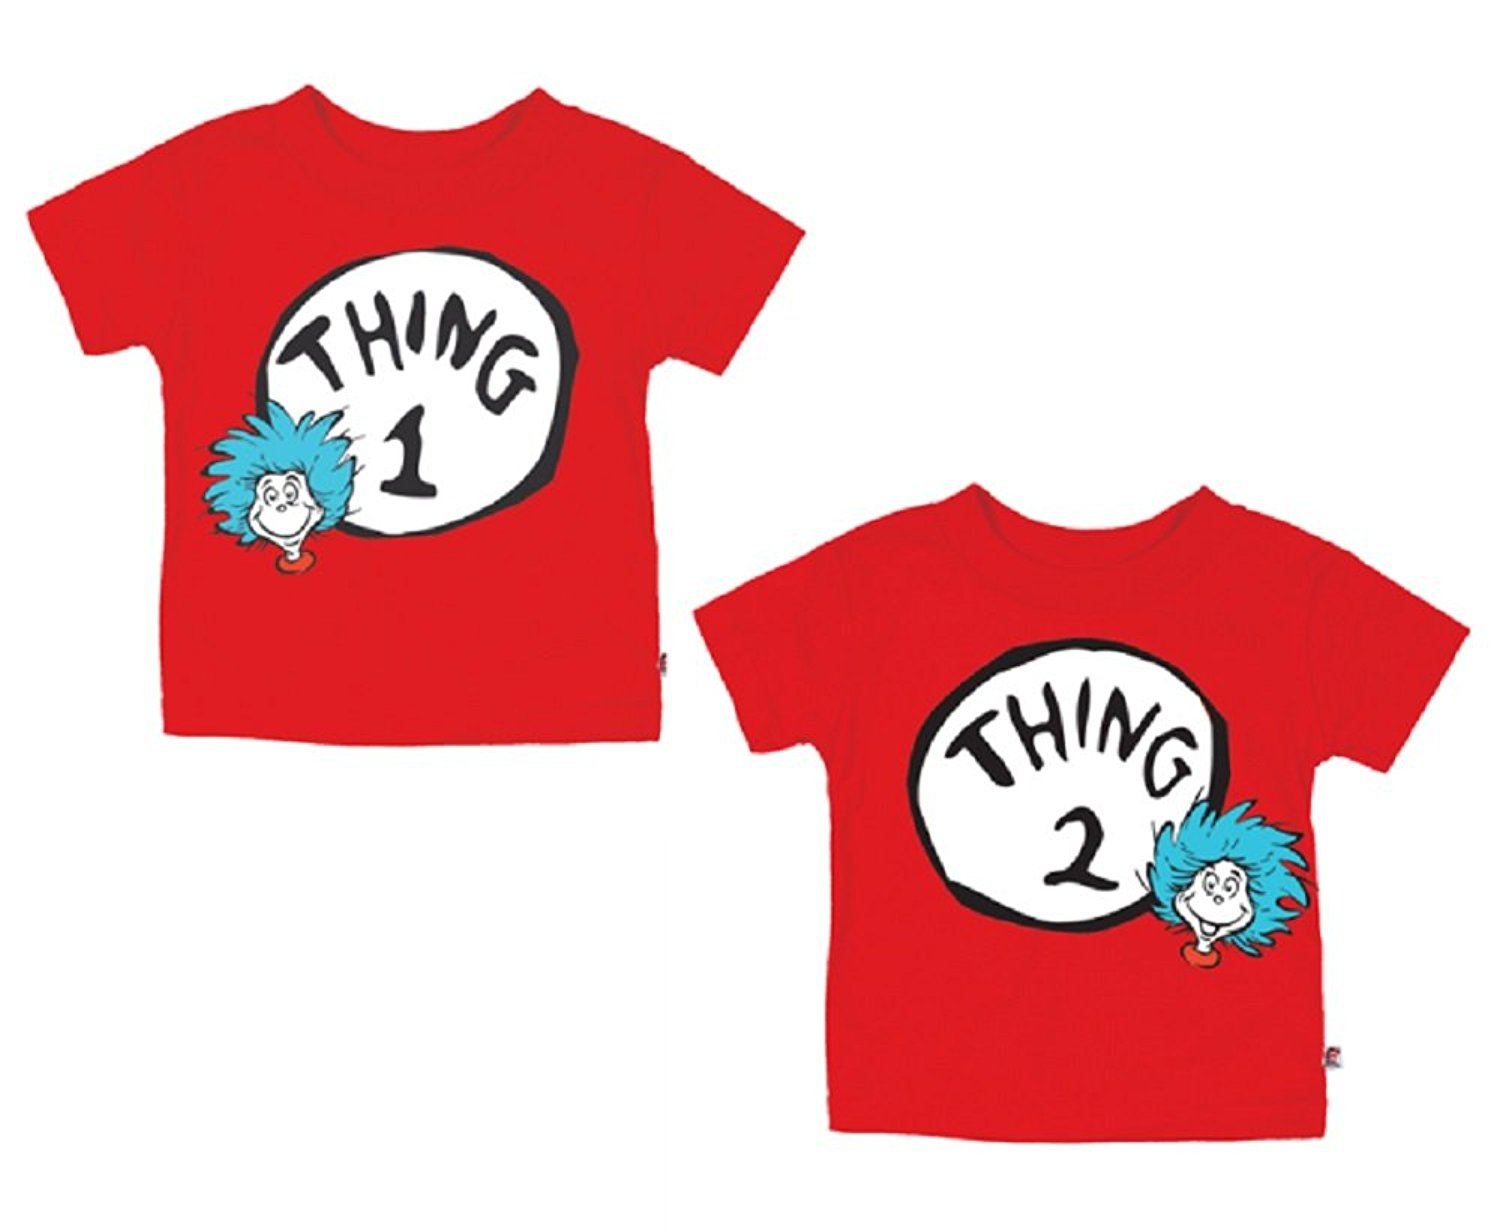 5a70fcdb Images Of Thing 1 And Thing 2 | Free download best Images Of Thing 1 ...